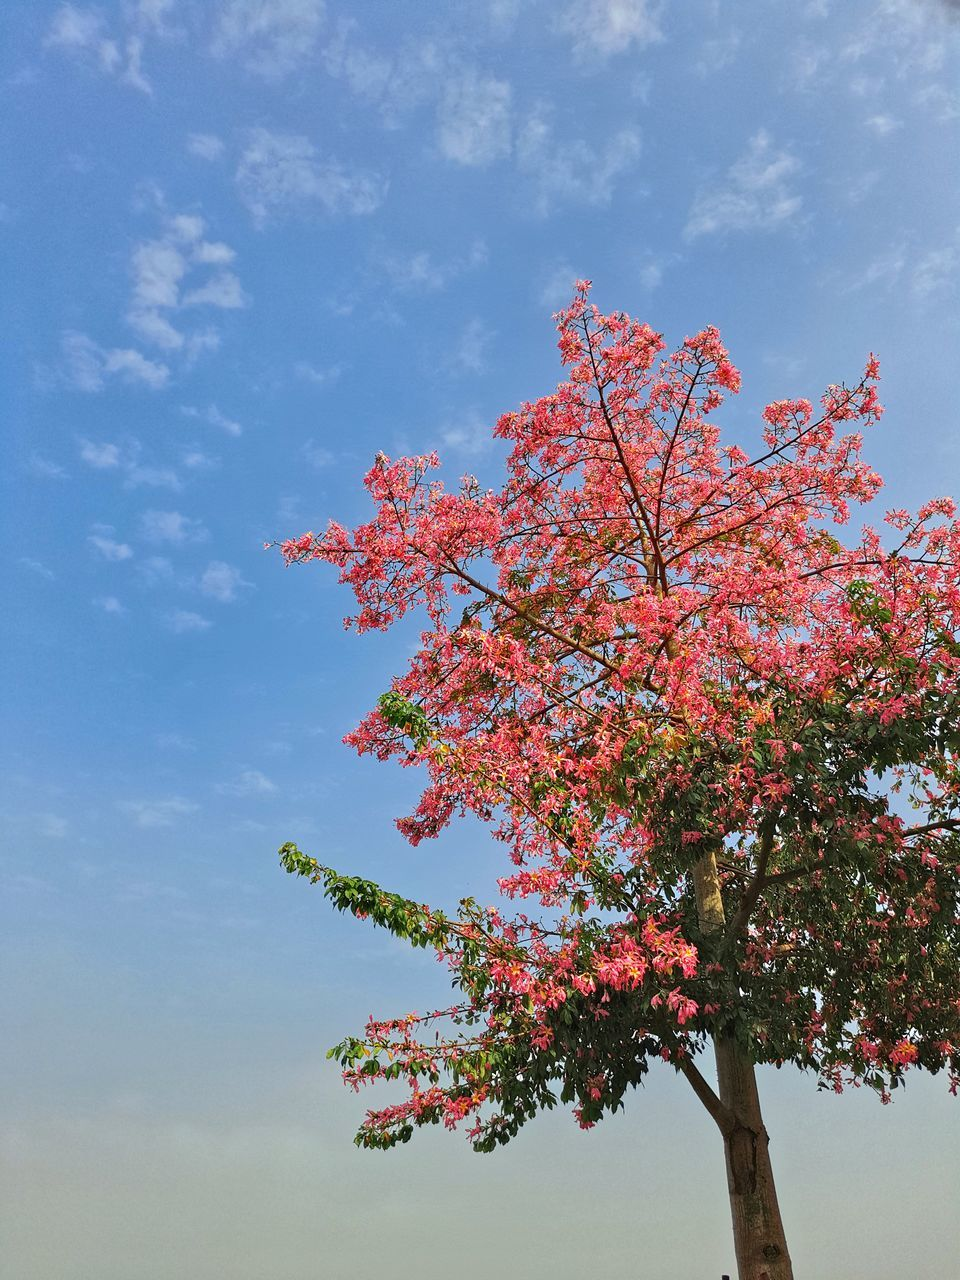 flower, tree, beauty in nature, growth, nature, low angle view, blossom, fragility, freshness, branch, sky, day, no people, springtime, tranquility, pink color, outdoors, cloud - sky, close-up